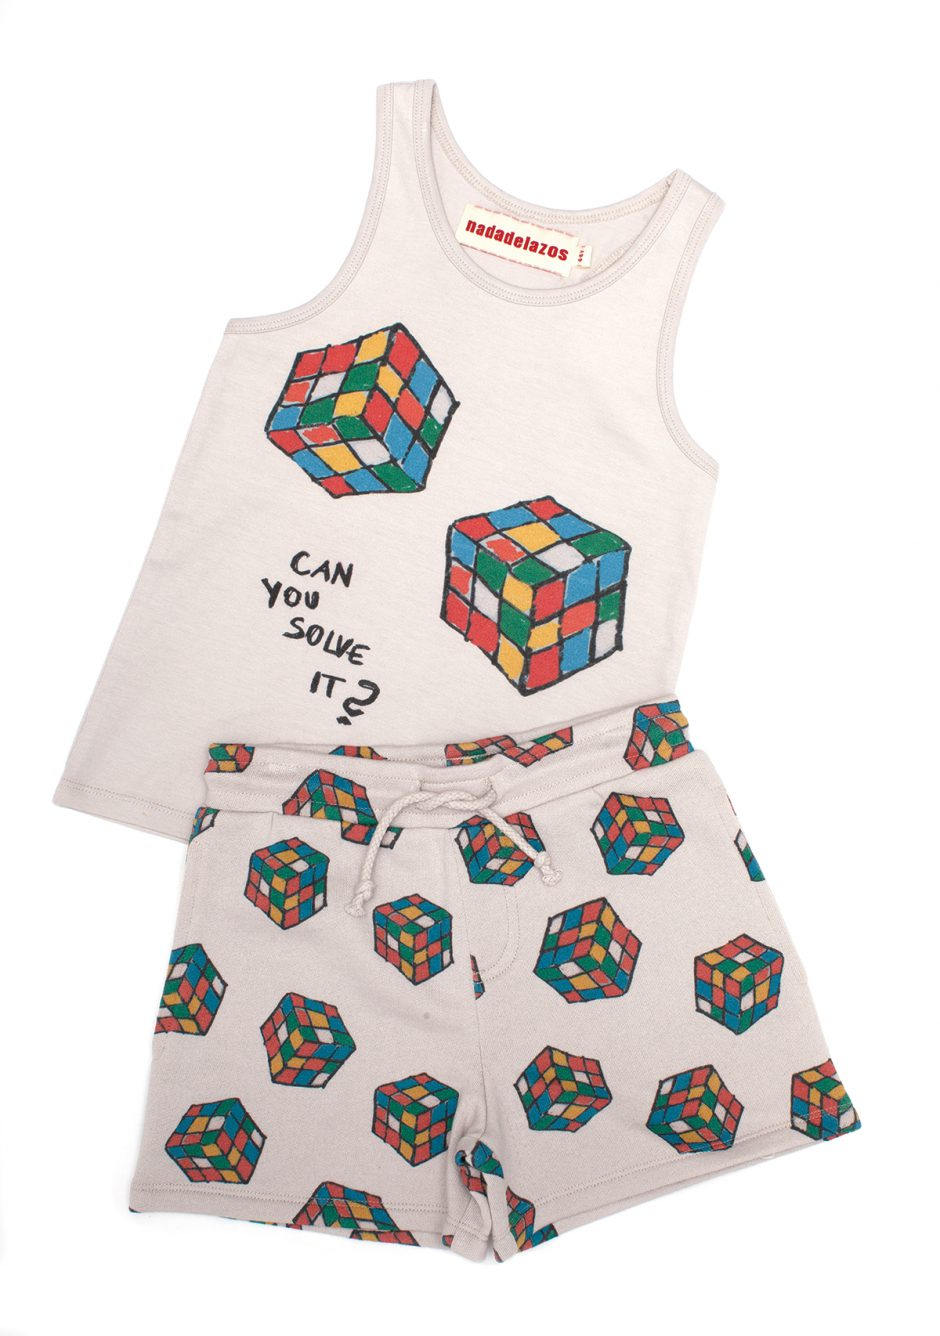 Nadadelazos puzzle tank top and shorts